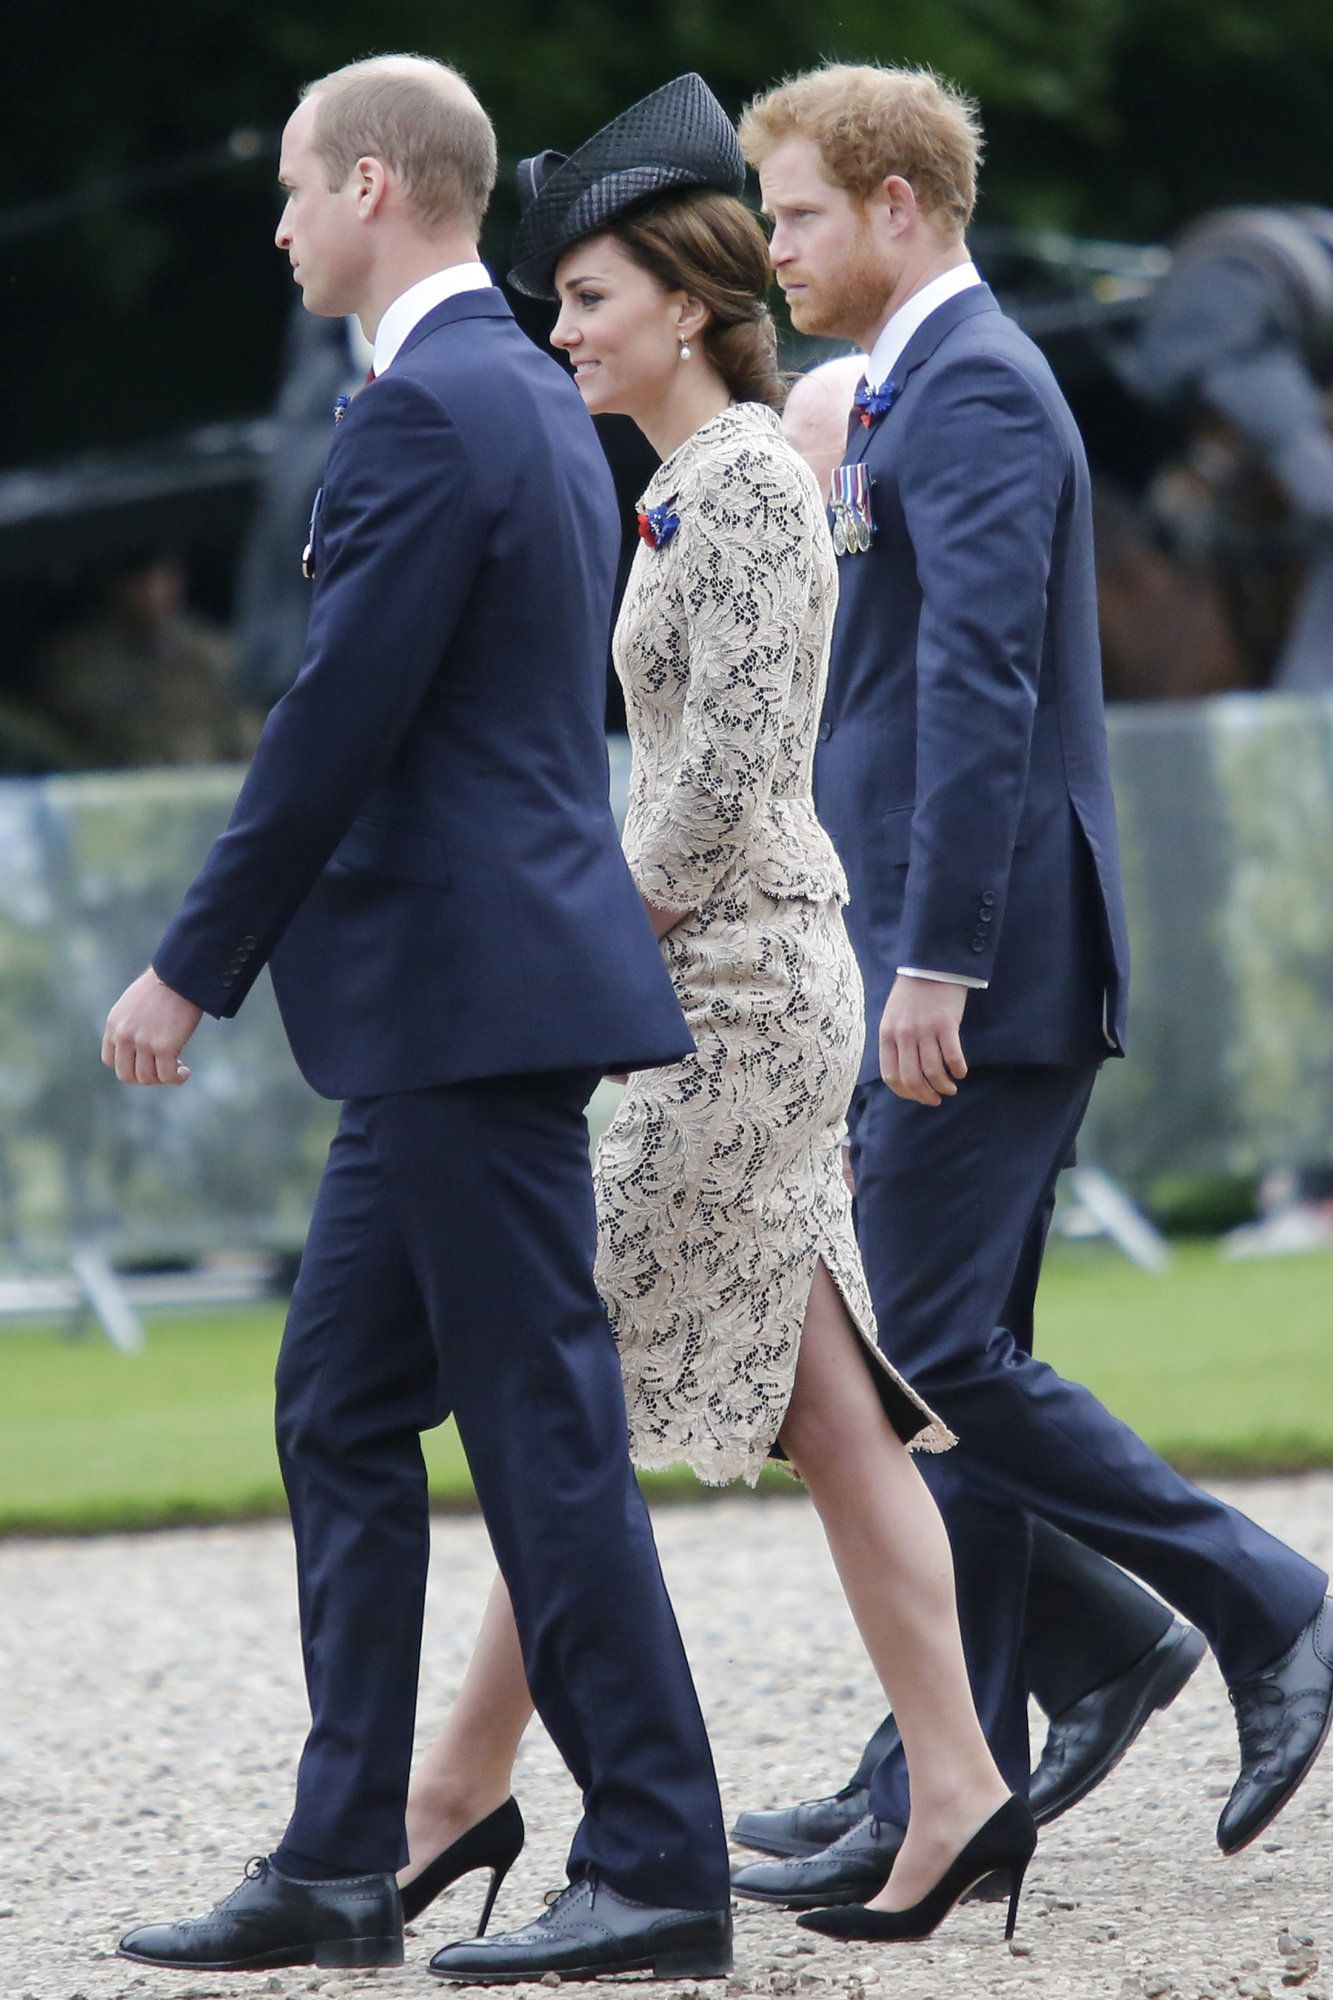 Lace dress kate middleton  Kate wore a custommade tan lace dress with dark lining u I